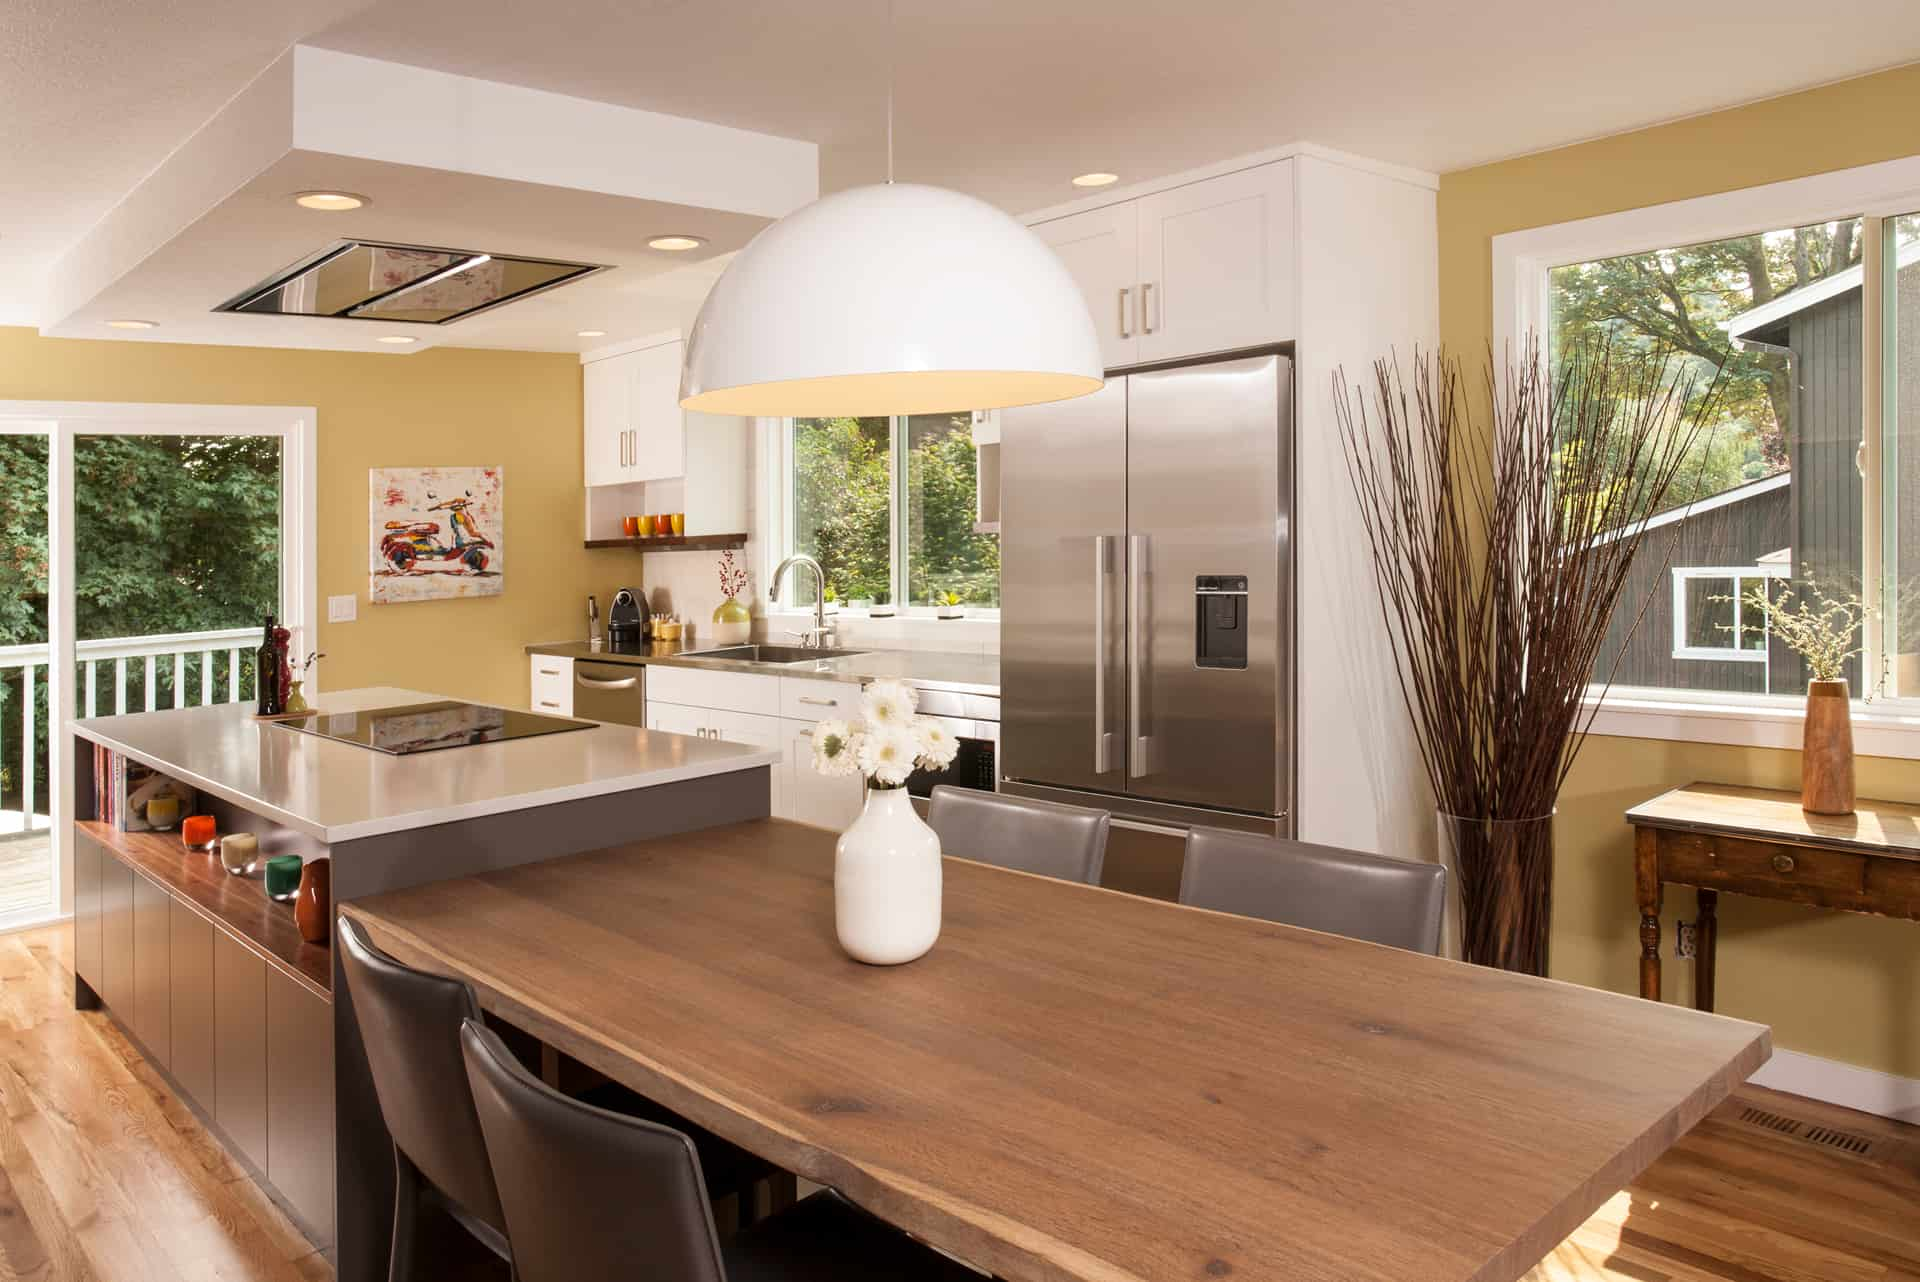 Neil Kelly updated this mid-century modern kitchen during a kitchen remodel